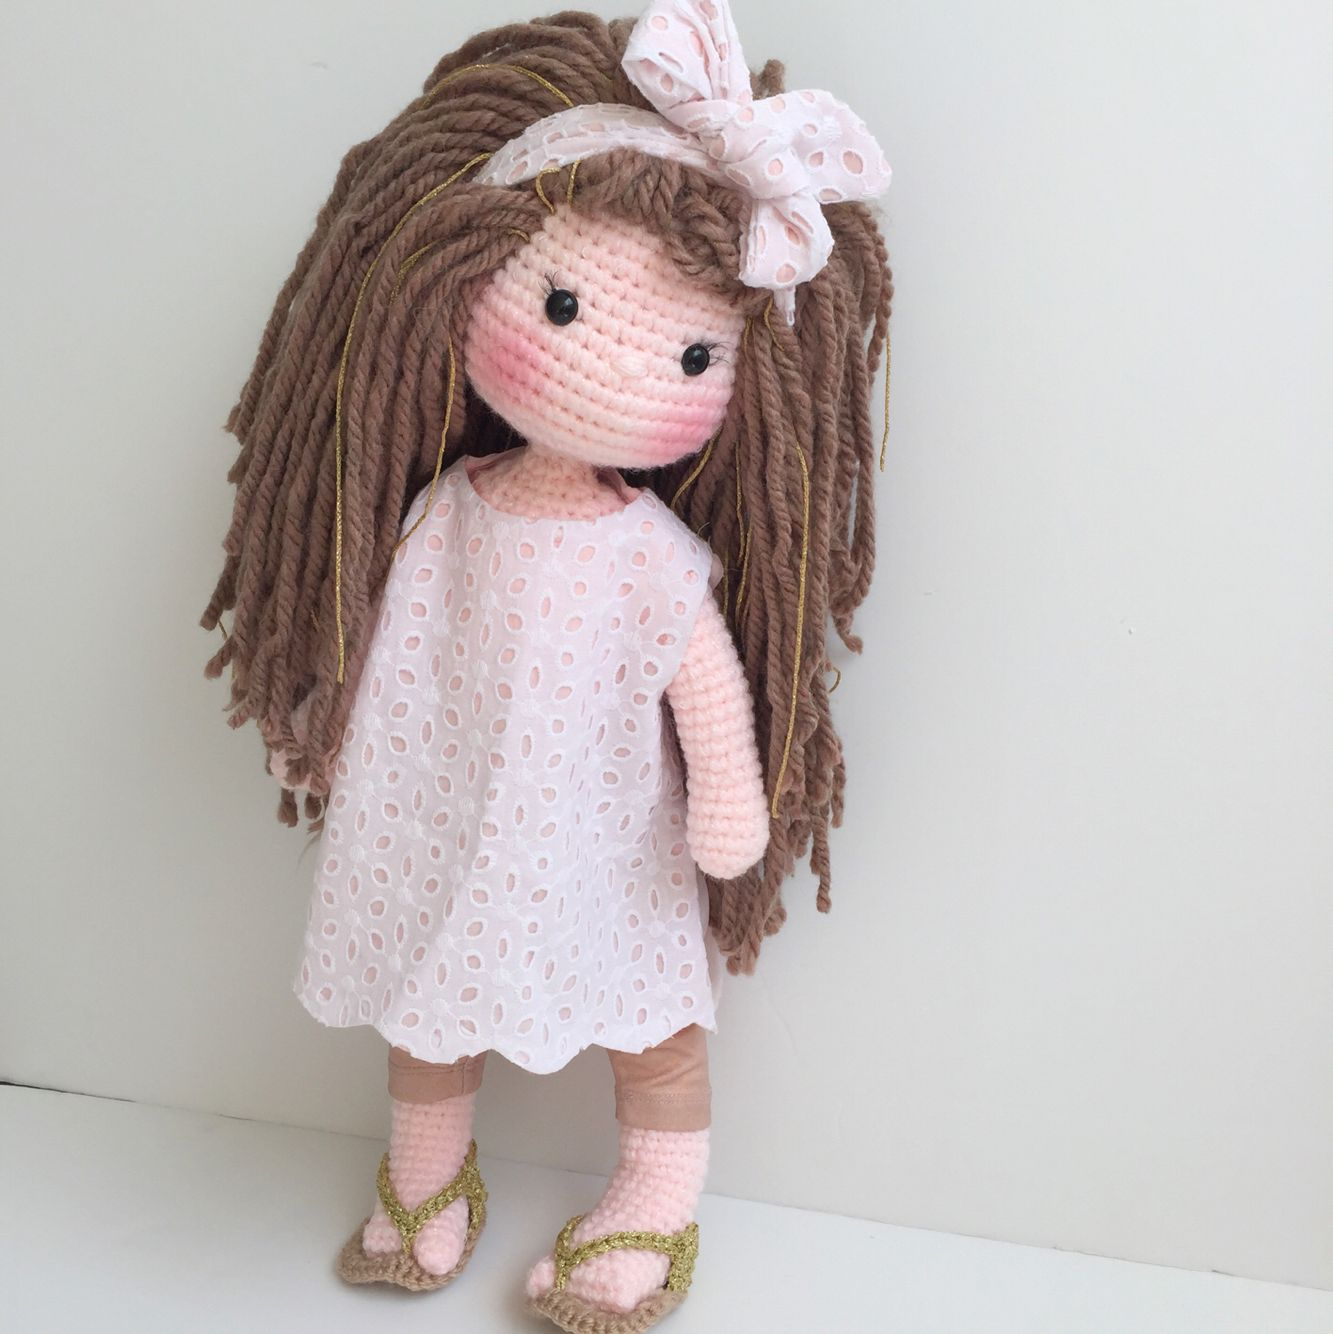 Amigurumi Doll How To : Amigurumi doll natalia pinterest